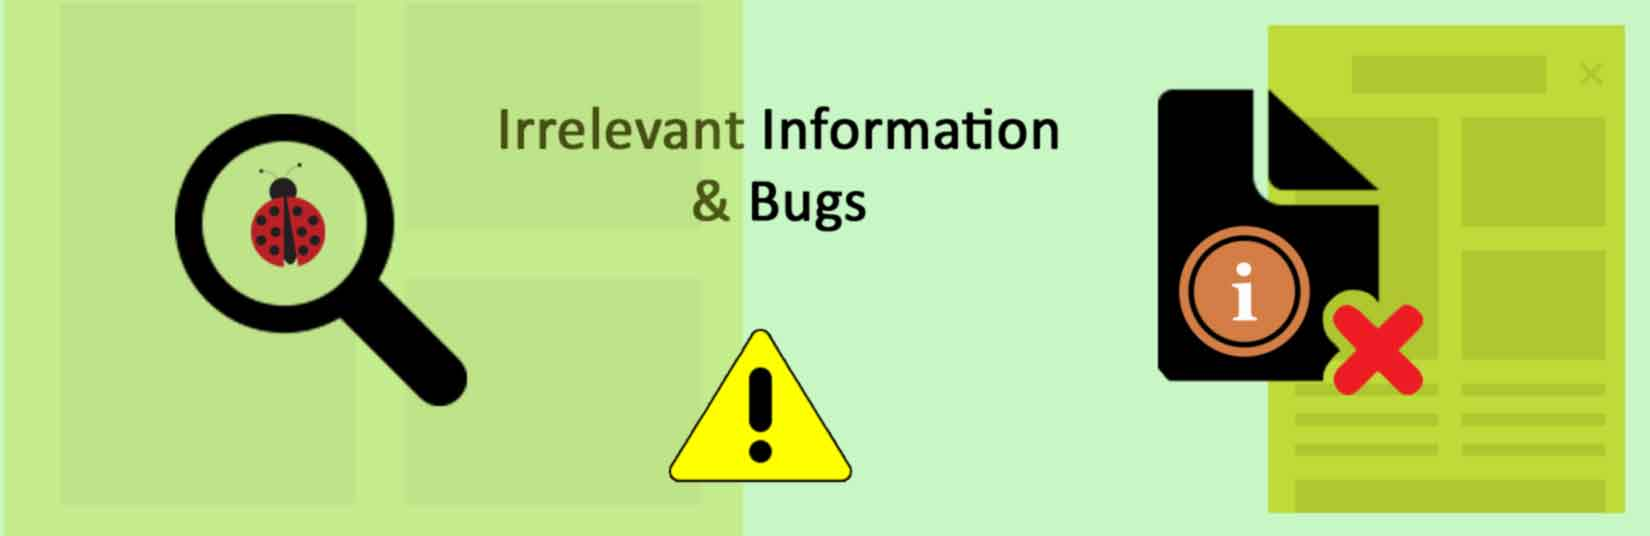 Irrelevant information and bugs